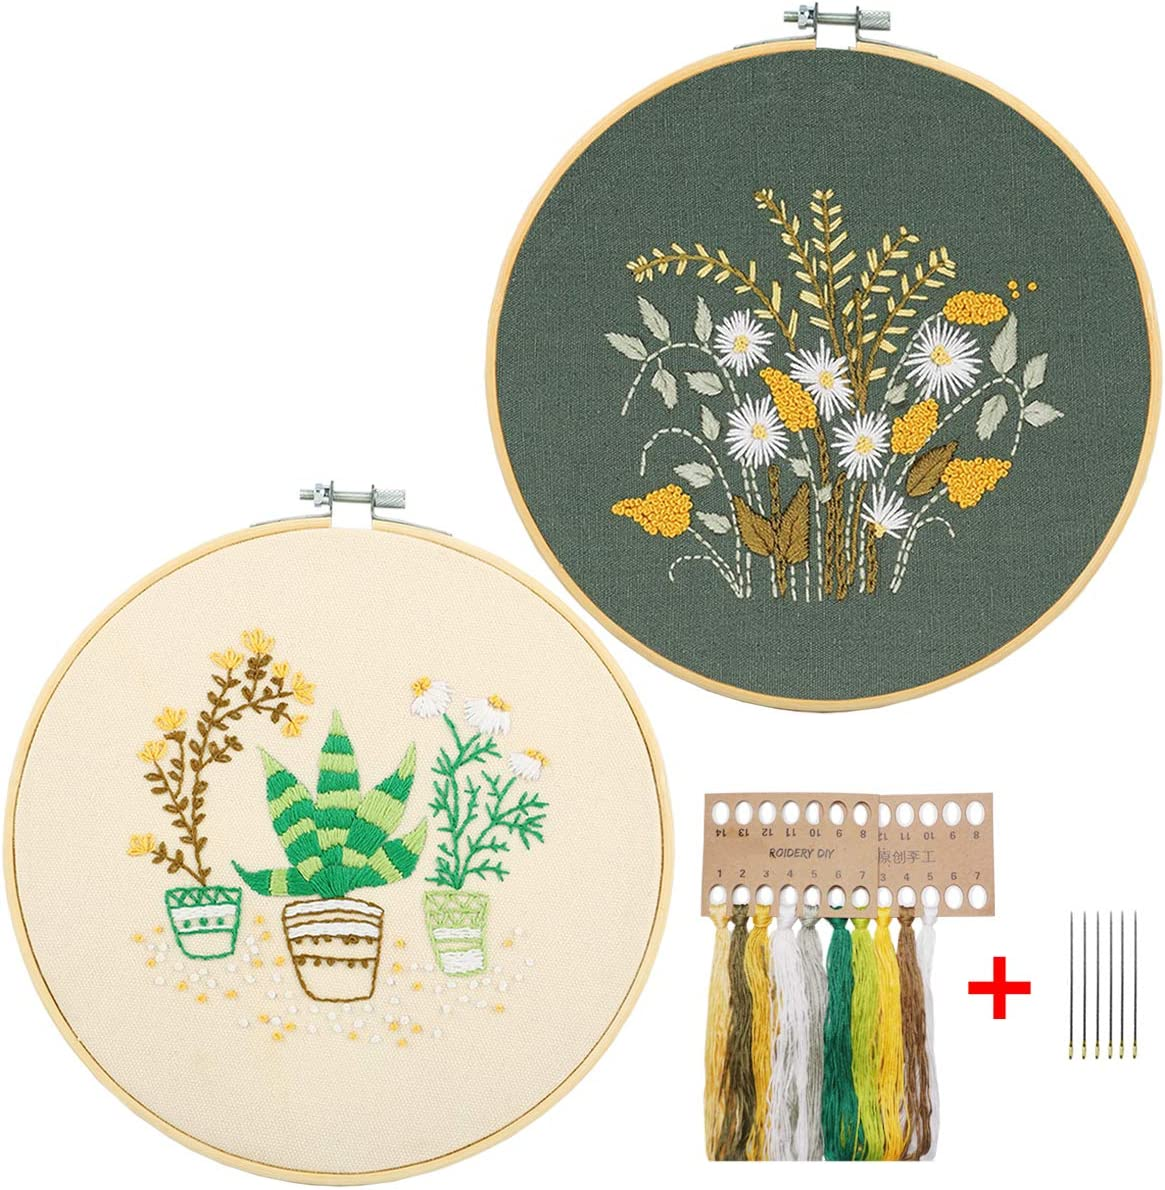 Color Threads and Tools Needlepoint Kits Embroidery Starter Kit with Pattern Cross Stitch Kit Include Stamped Embroidery Clothes with Floral Pattern Cactus Plastic Embroidery Hoops